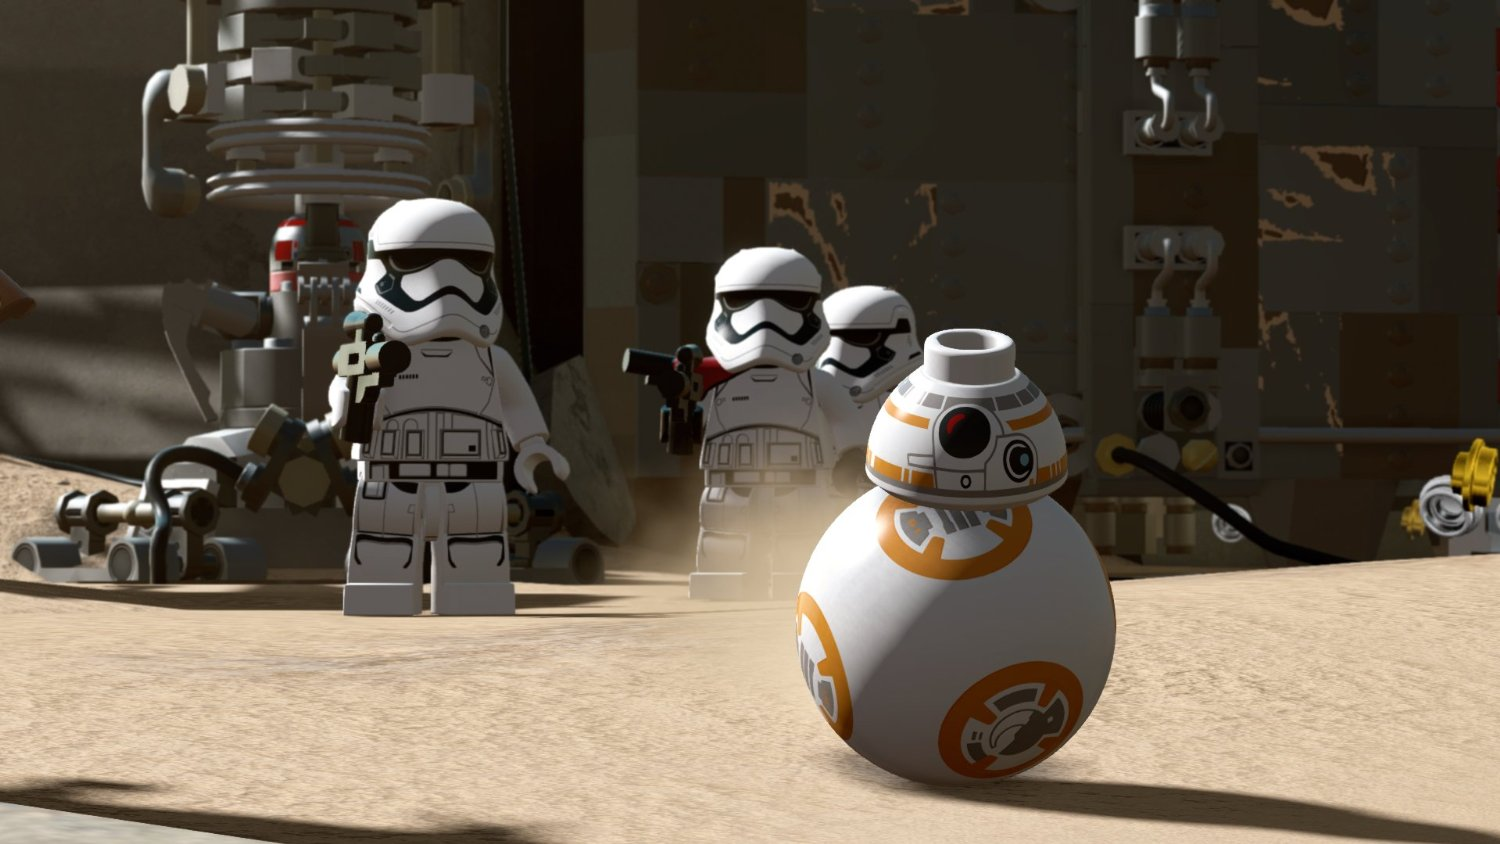 - Lego Star Wars: The Force Awakens